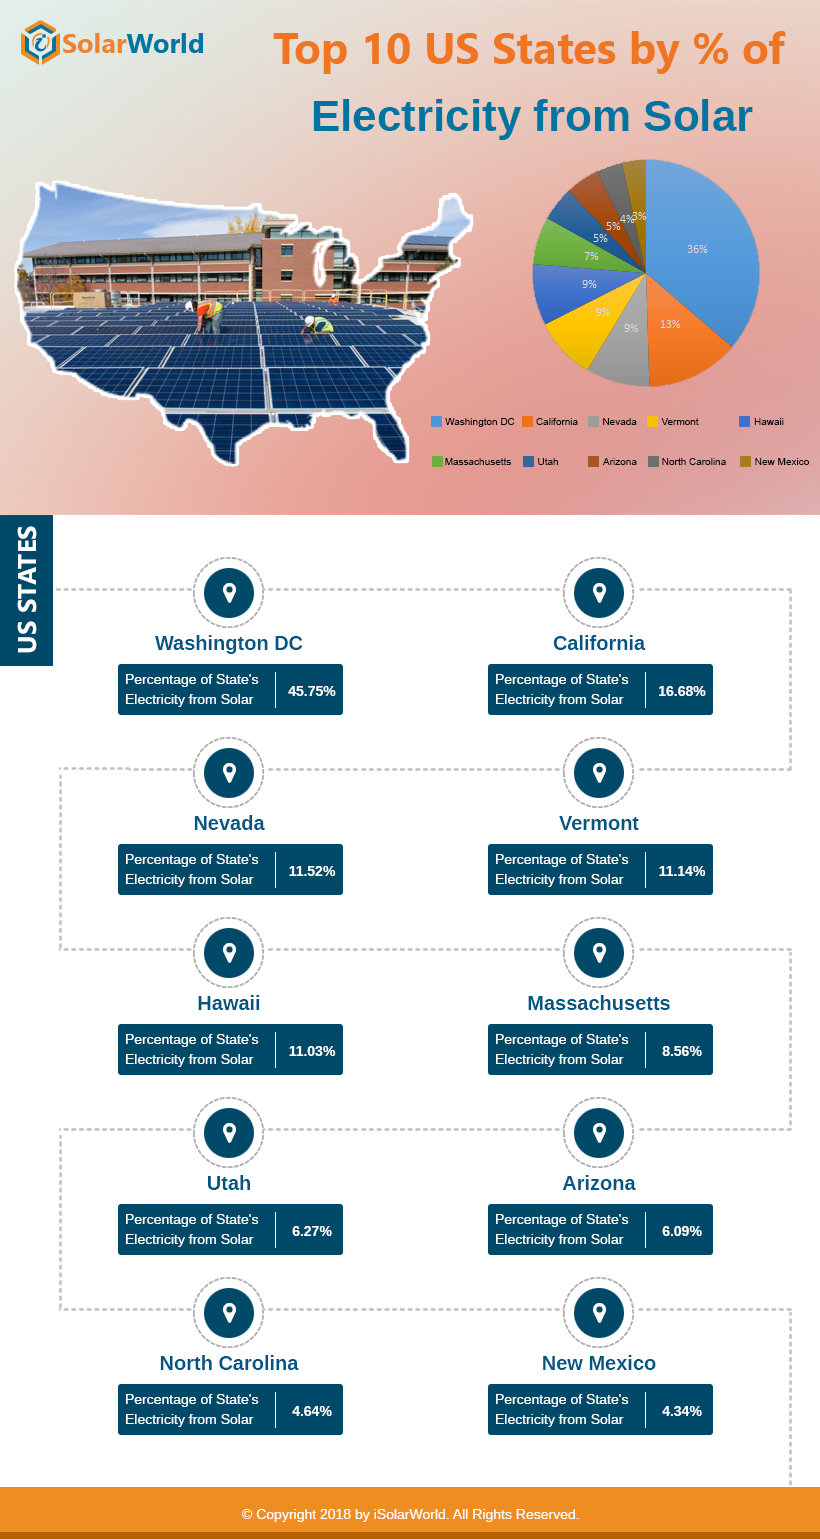 Top 10 US States By % of Electricity From Solar